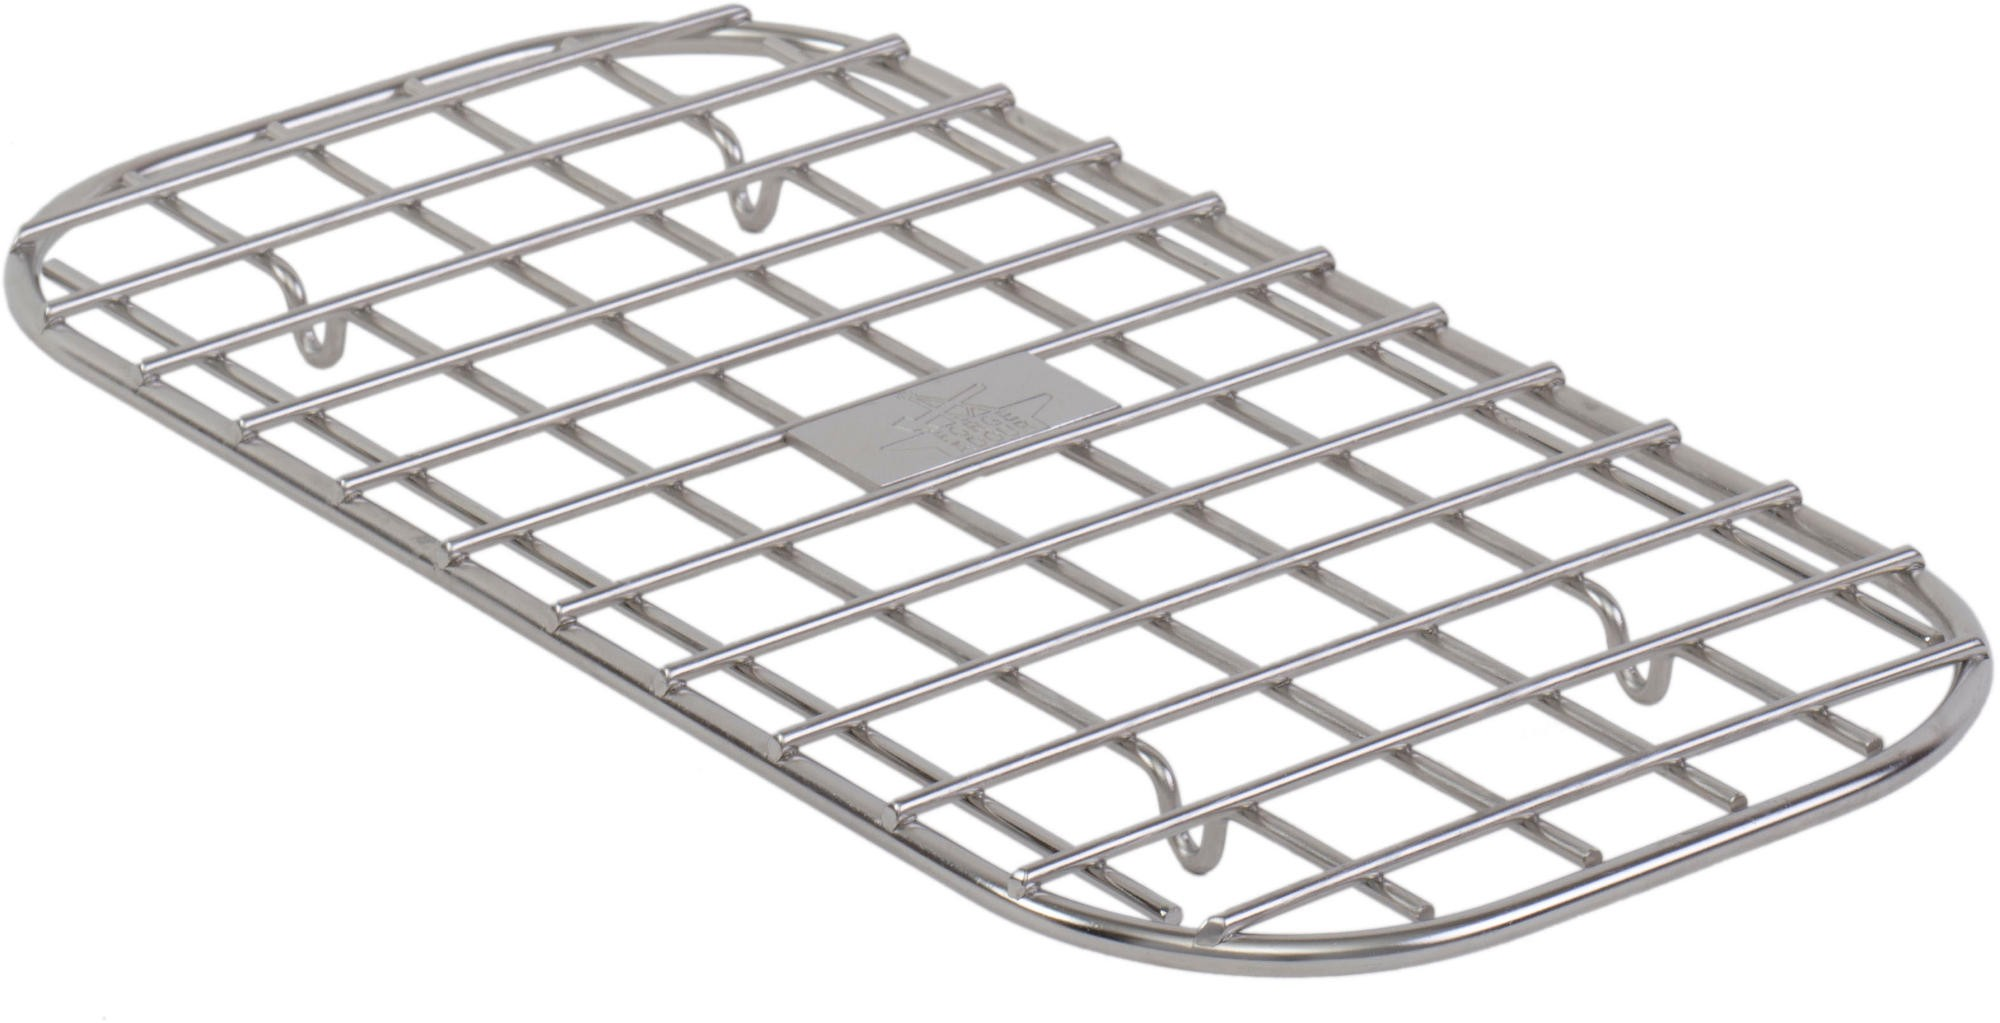 FORGE ADOUR - GRILLE INOX RECTANG